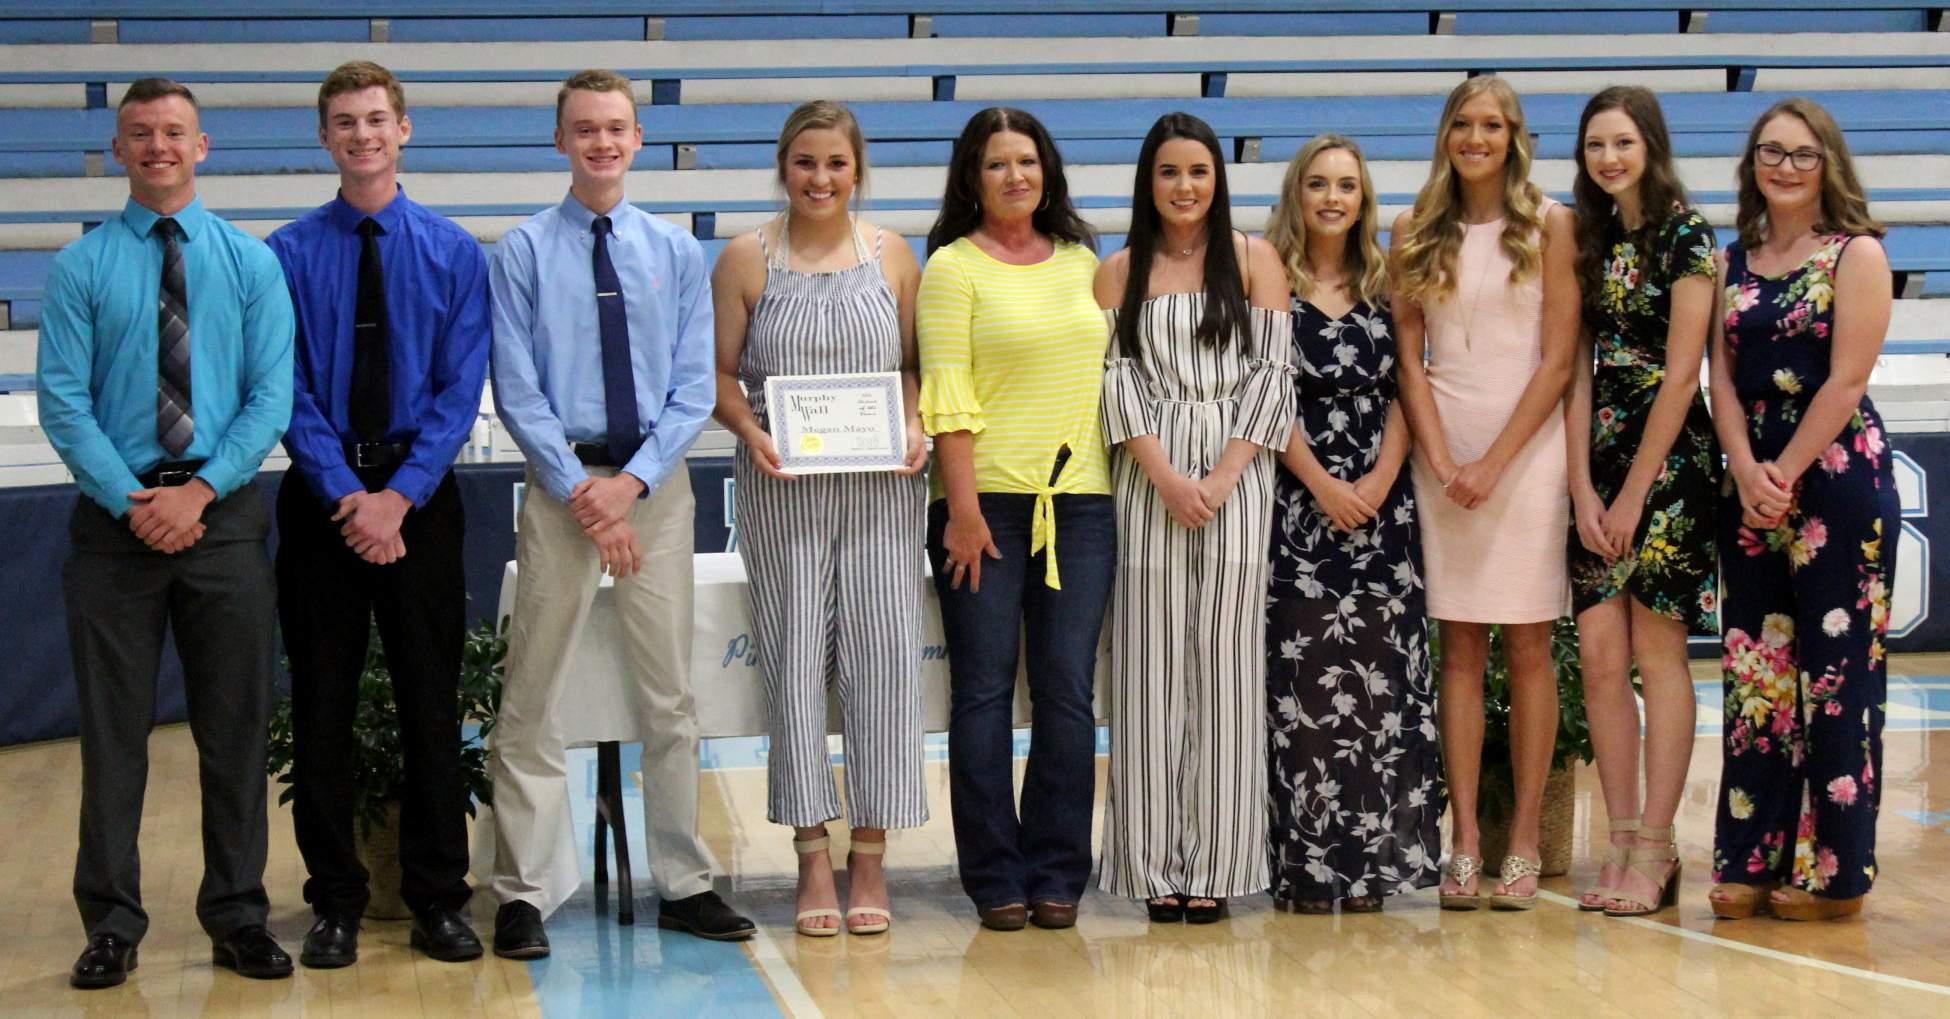 PCHS 2018 Student of the Month students Ryan Brueggemann, Stephan Wagner, Justin Keller, Megan Mayo, Hannah Epplin, Madison Garagavalia, Shania Opp, Abi West, and Sydney Caccioppo pose with Murphy-Wall State Bank and Trust Company VP Candice Knight